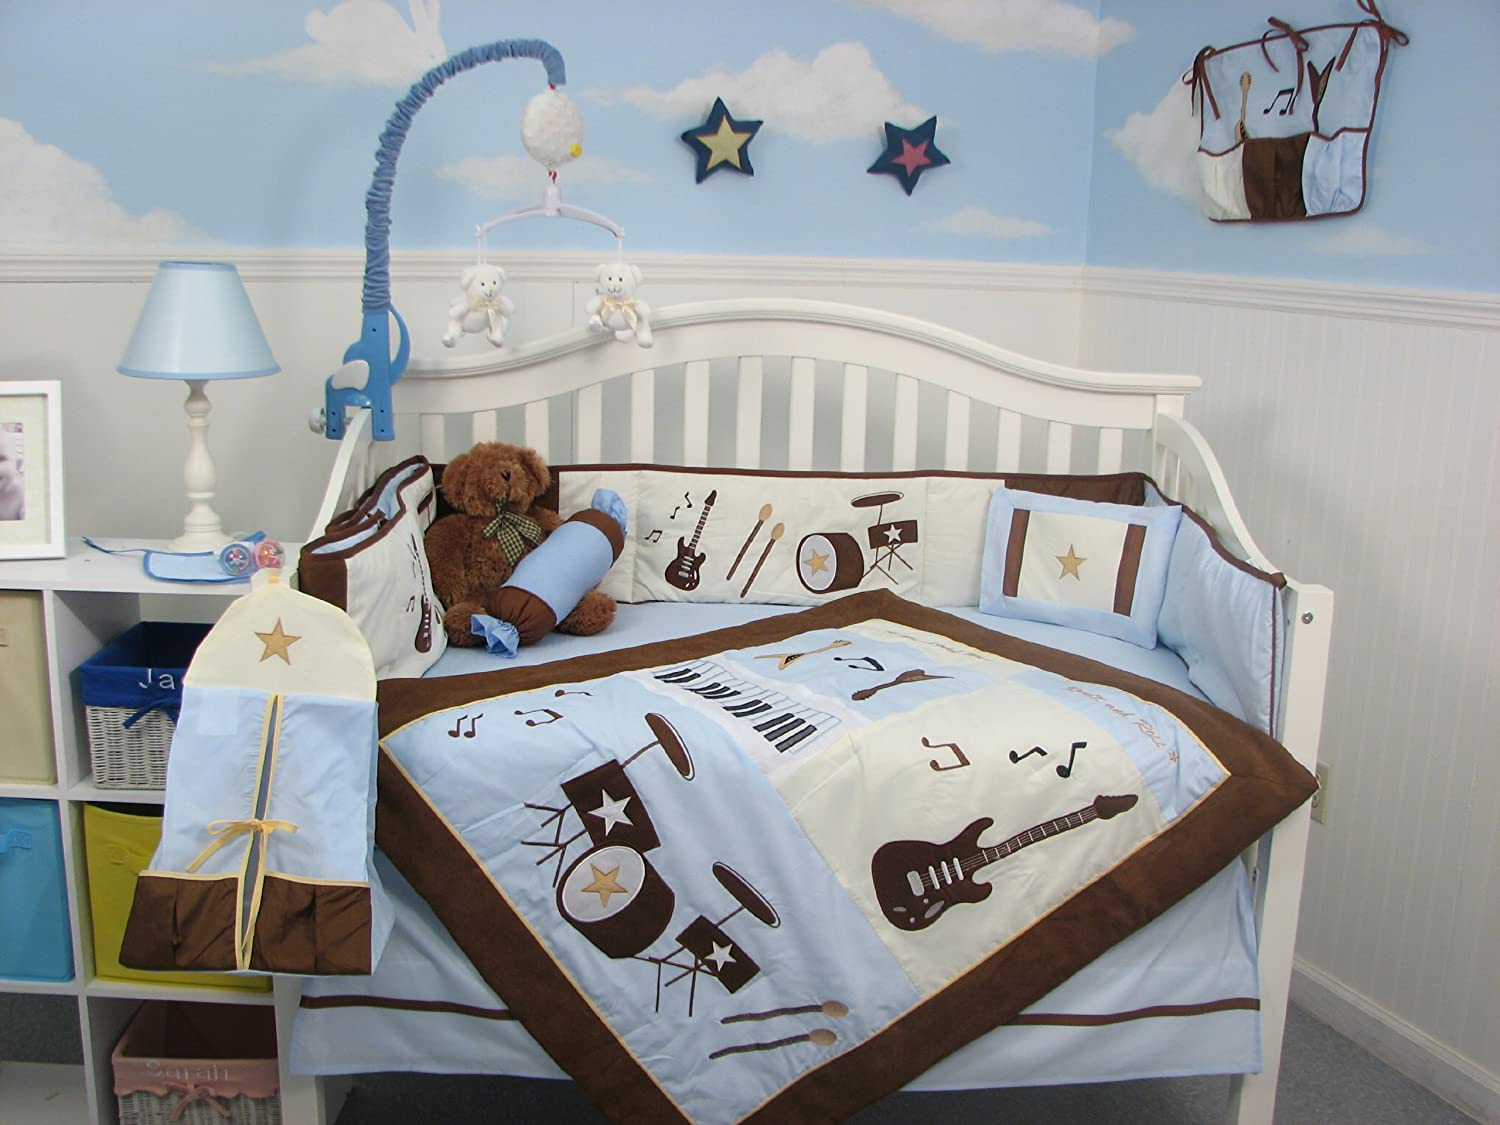 beddingss size unique furniture sets plus boy cheap beddings full bedding and gray cribs conjunction for as girls fitted baby with of sheets coral in crib clearance well nursery also gold